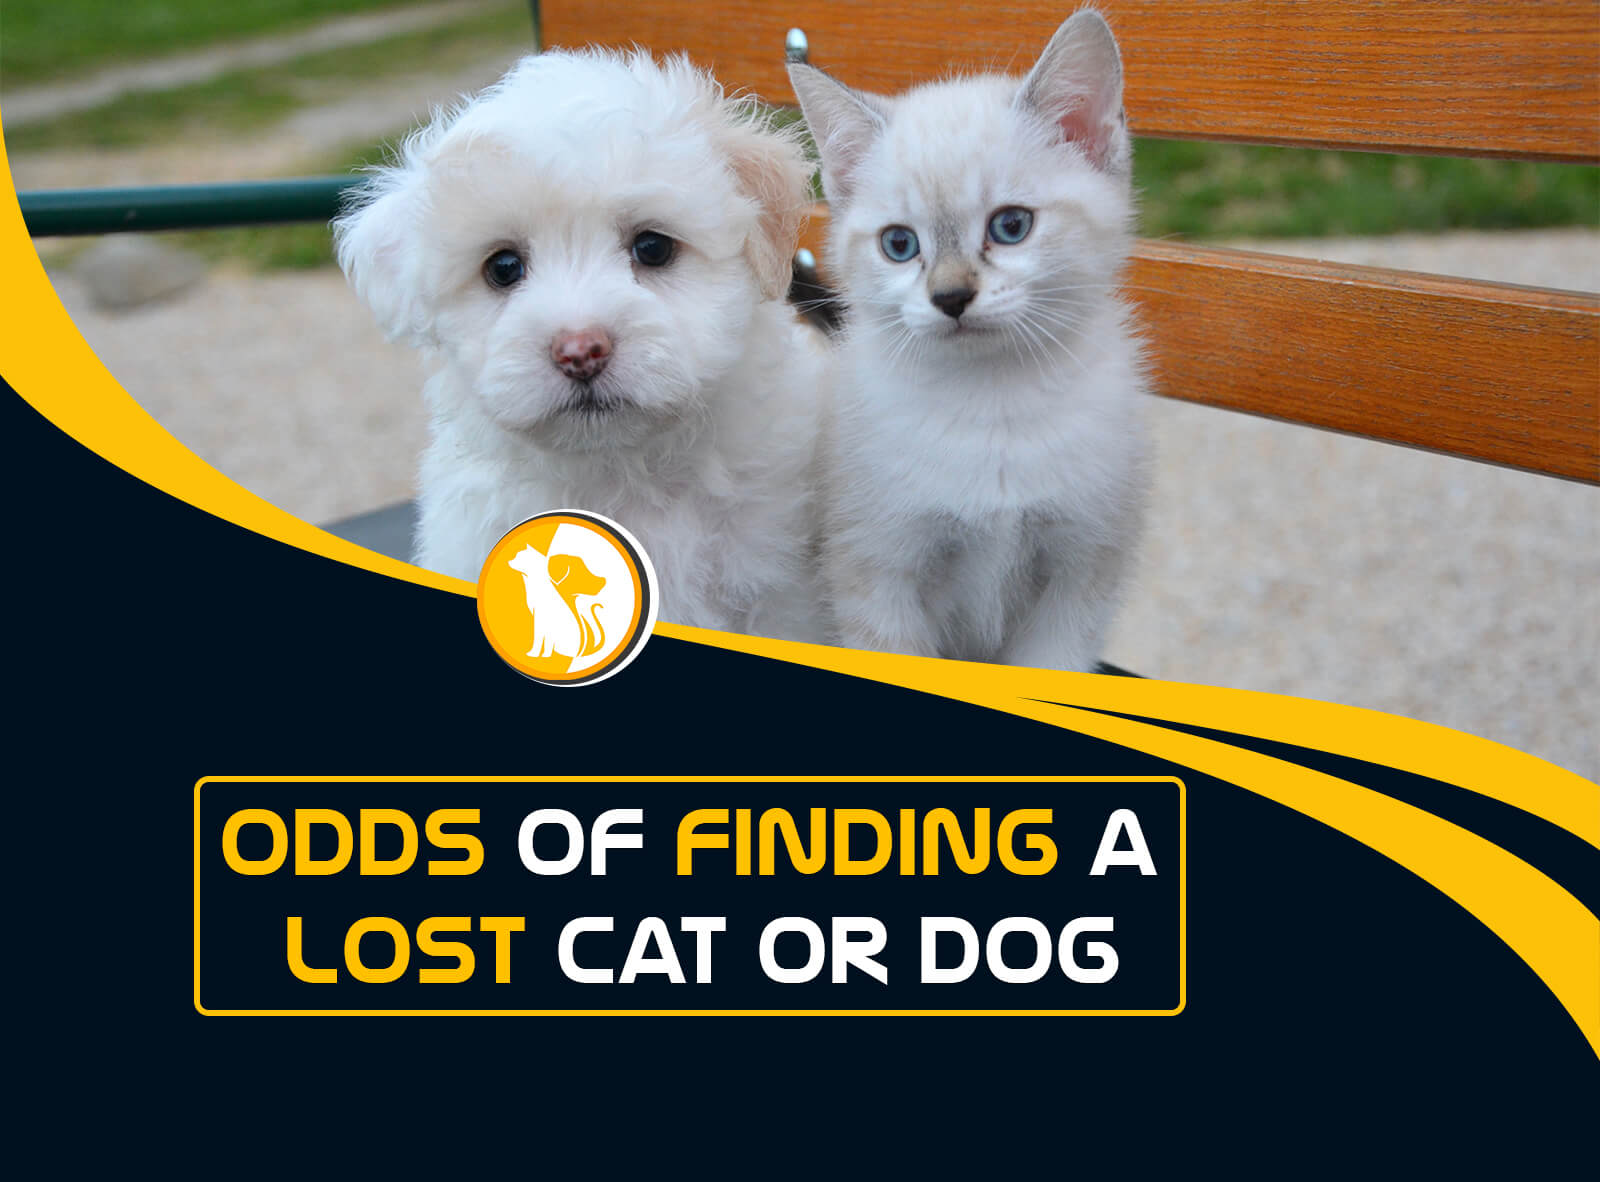 What Are the Odds of Finding a Lost Cat or Dog?